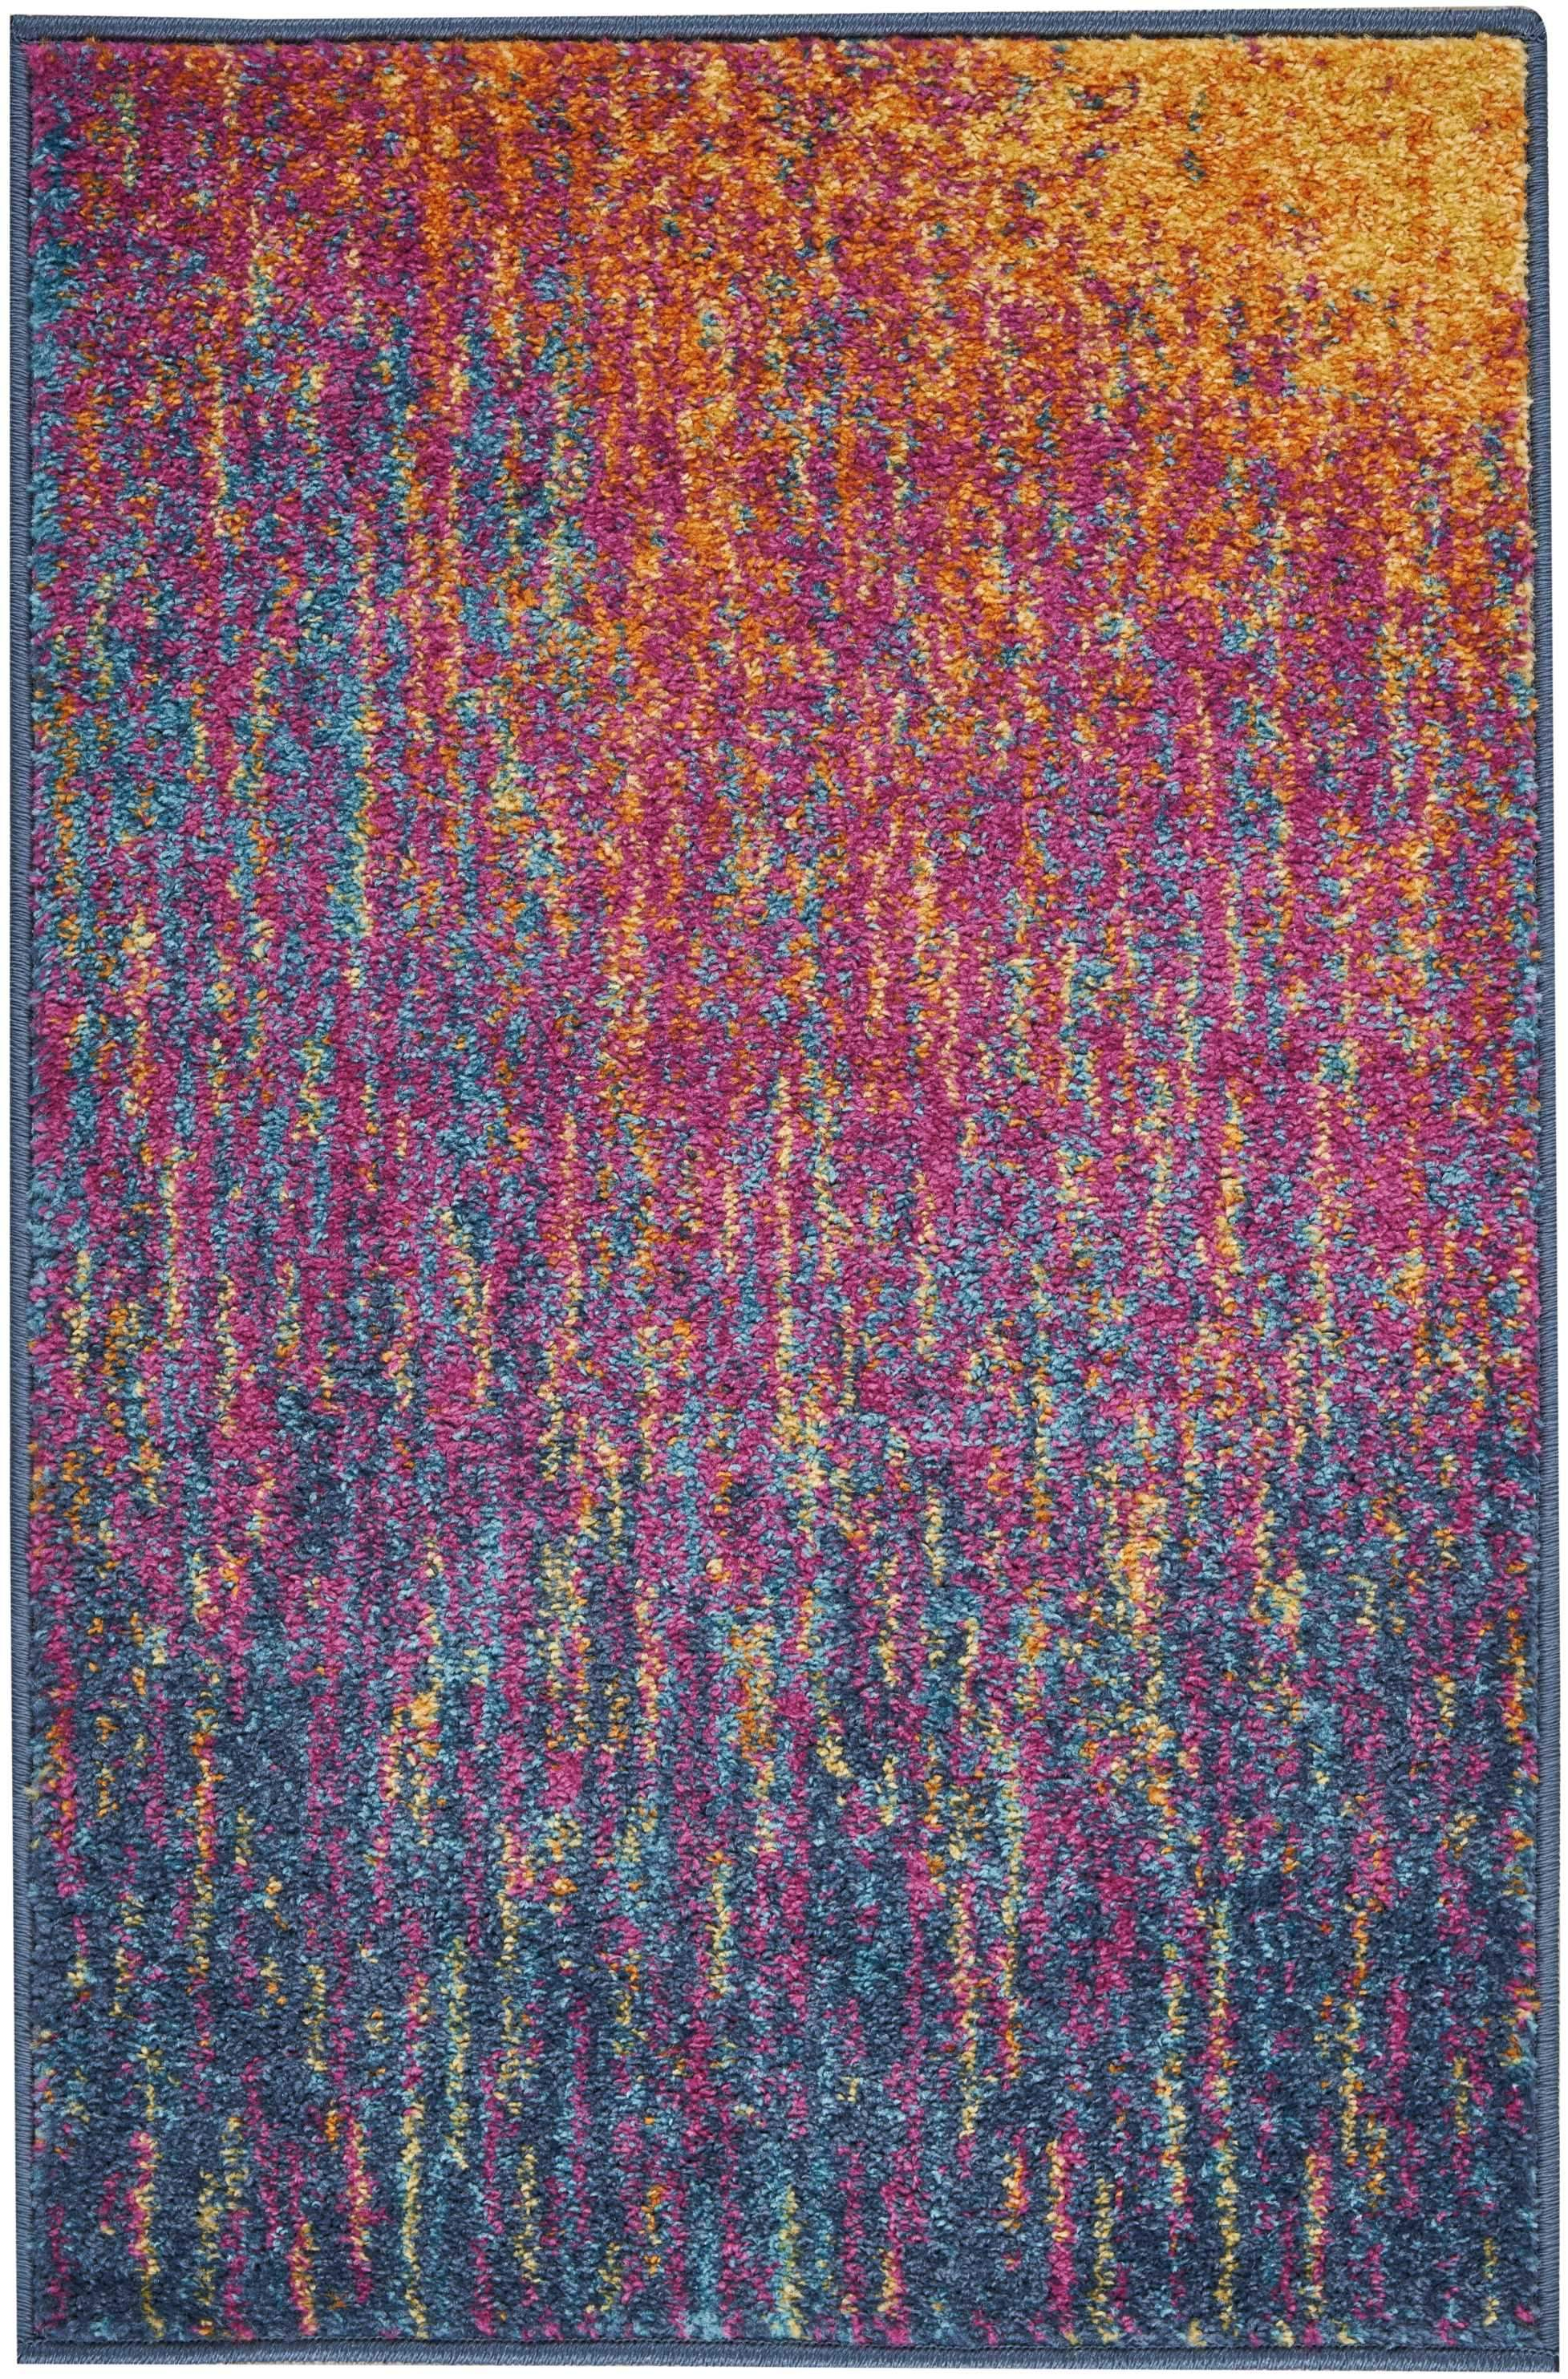 "Passion PSN09 Multicolor Area Rug-Area Rug-Nourison-1'10"" x 2'10""-The Rug Truck"